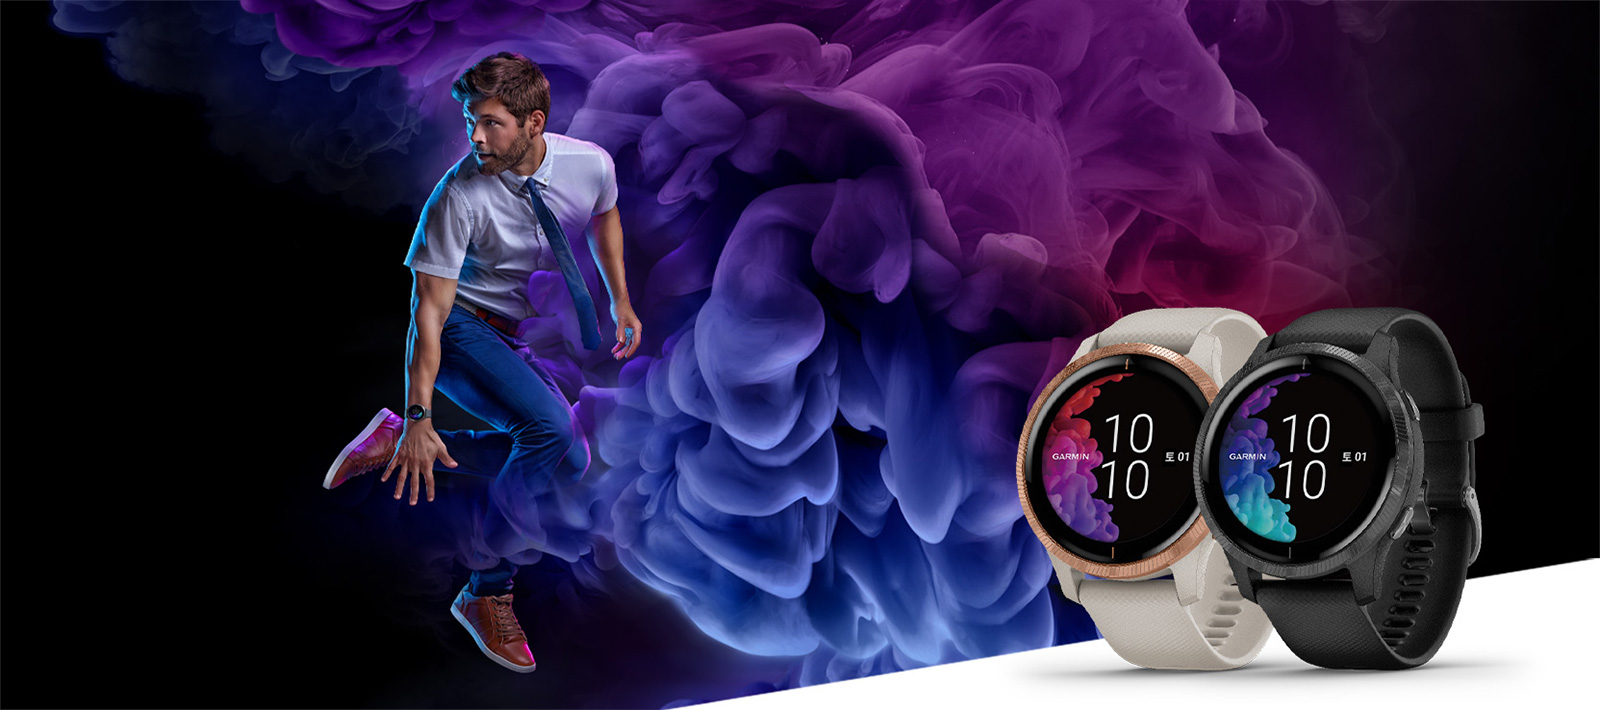 Venu - GPS smartwatch with a striking display